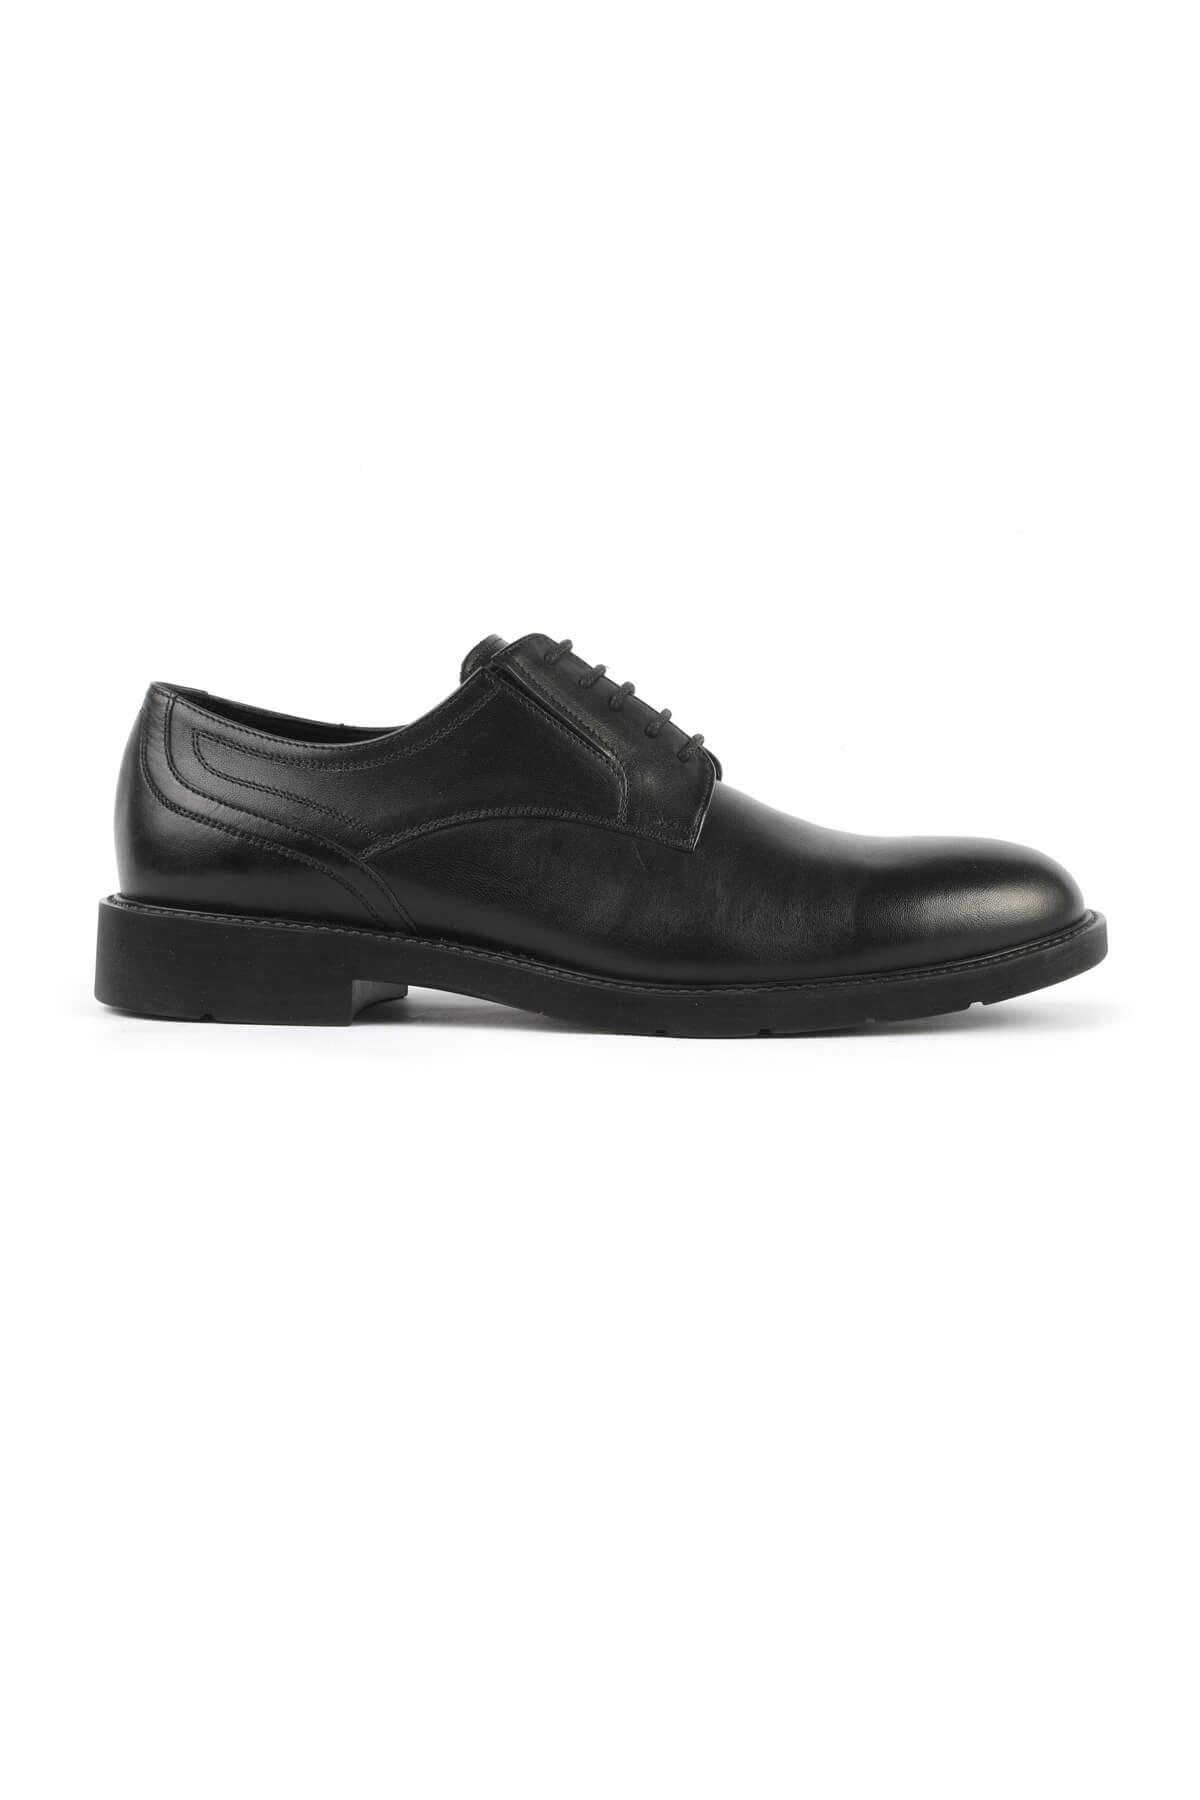 Libero 2922 Black Casual Shoes